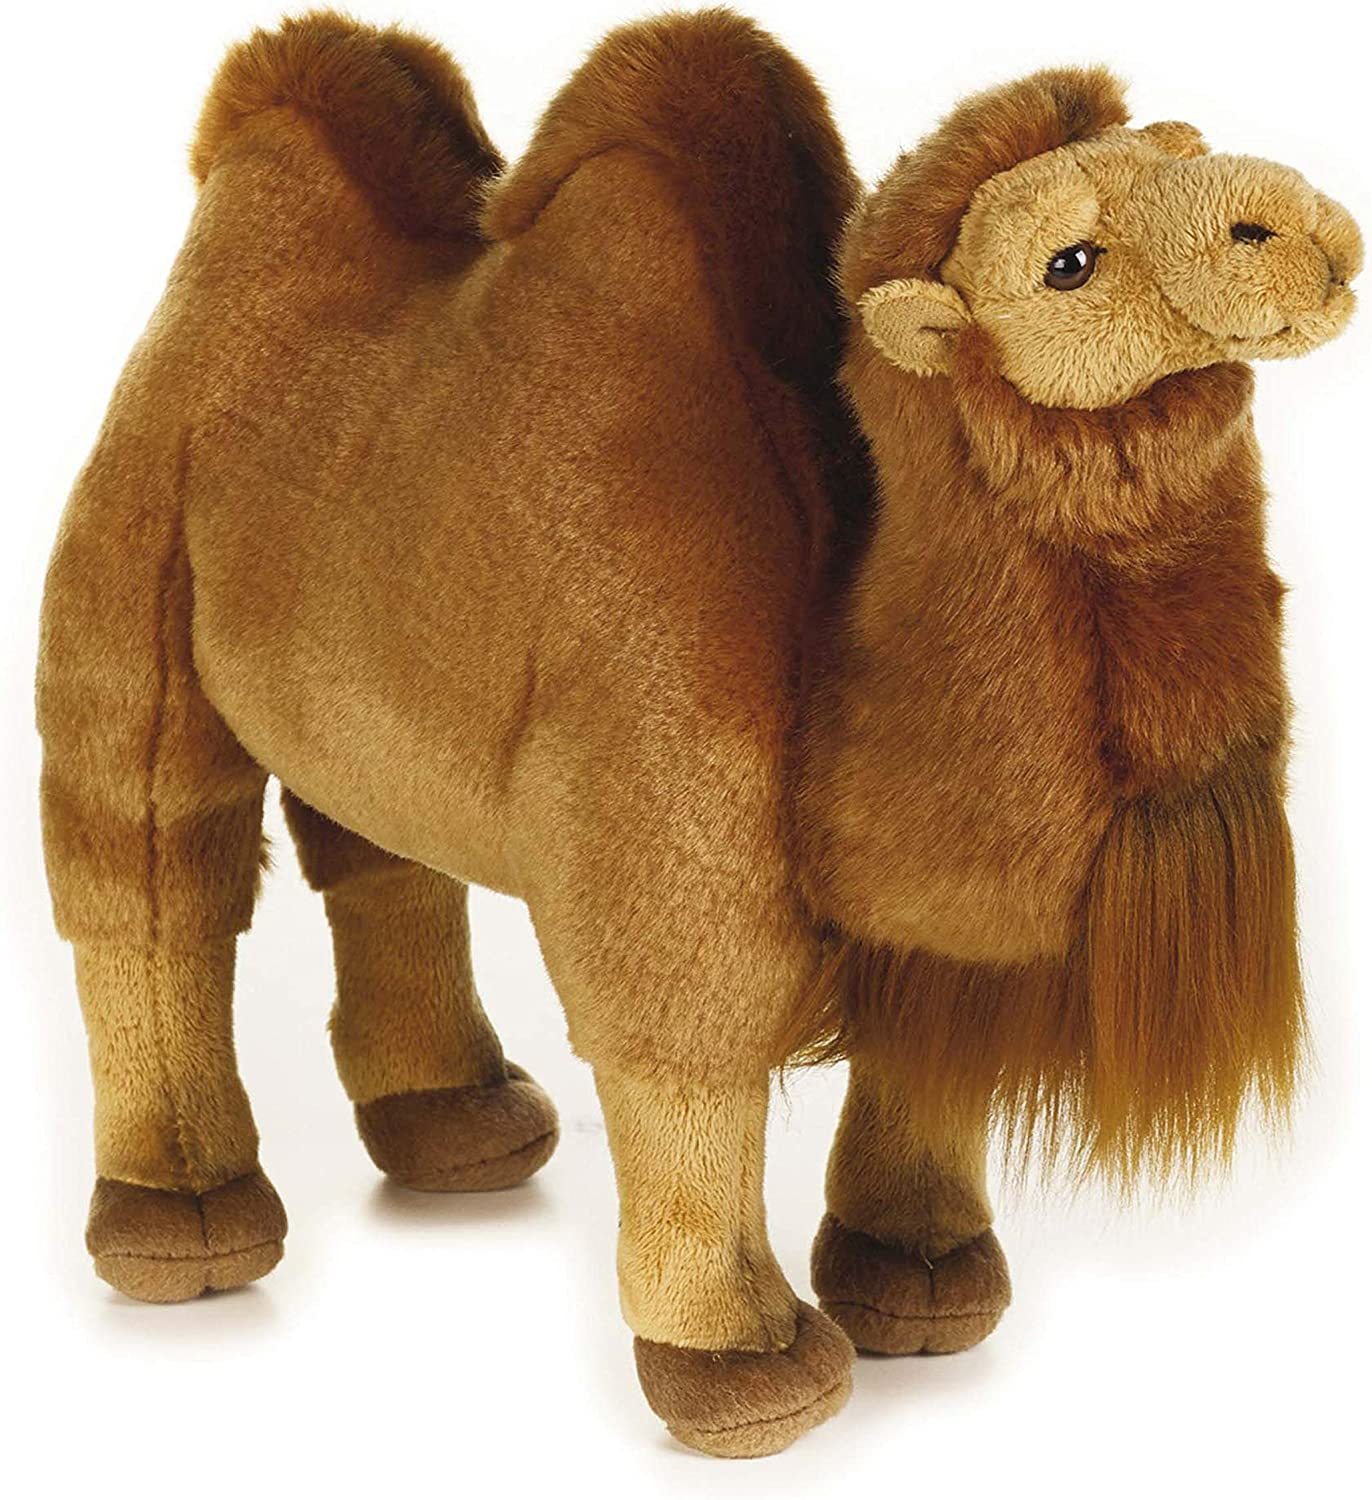 National Geographic Bactrian Denver Mall Camel Selling rankings Plush